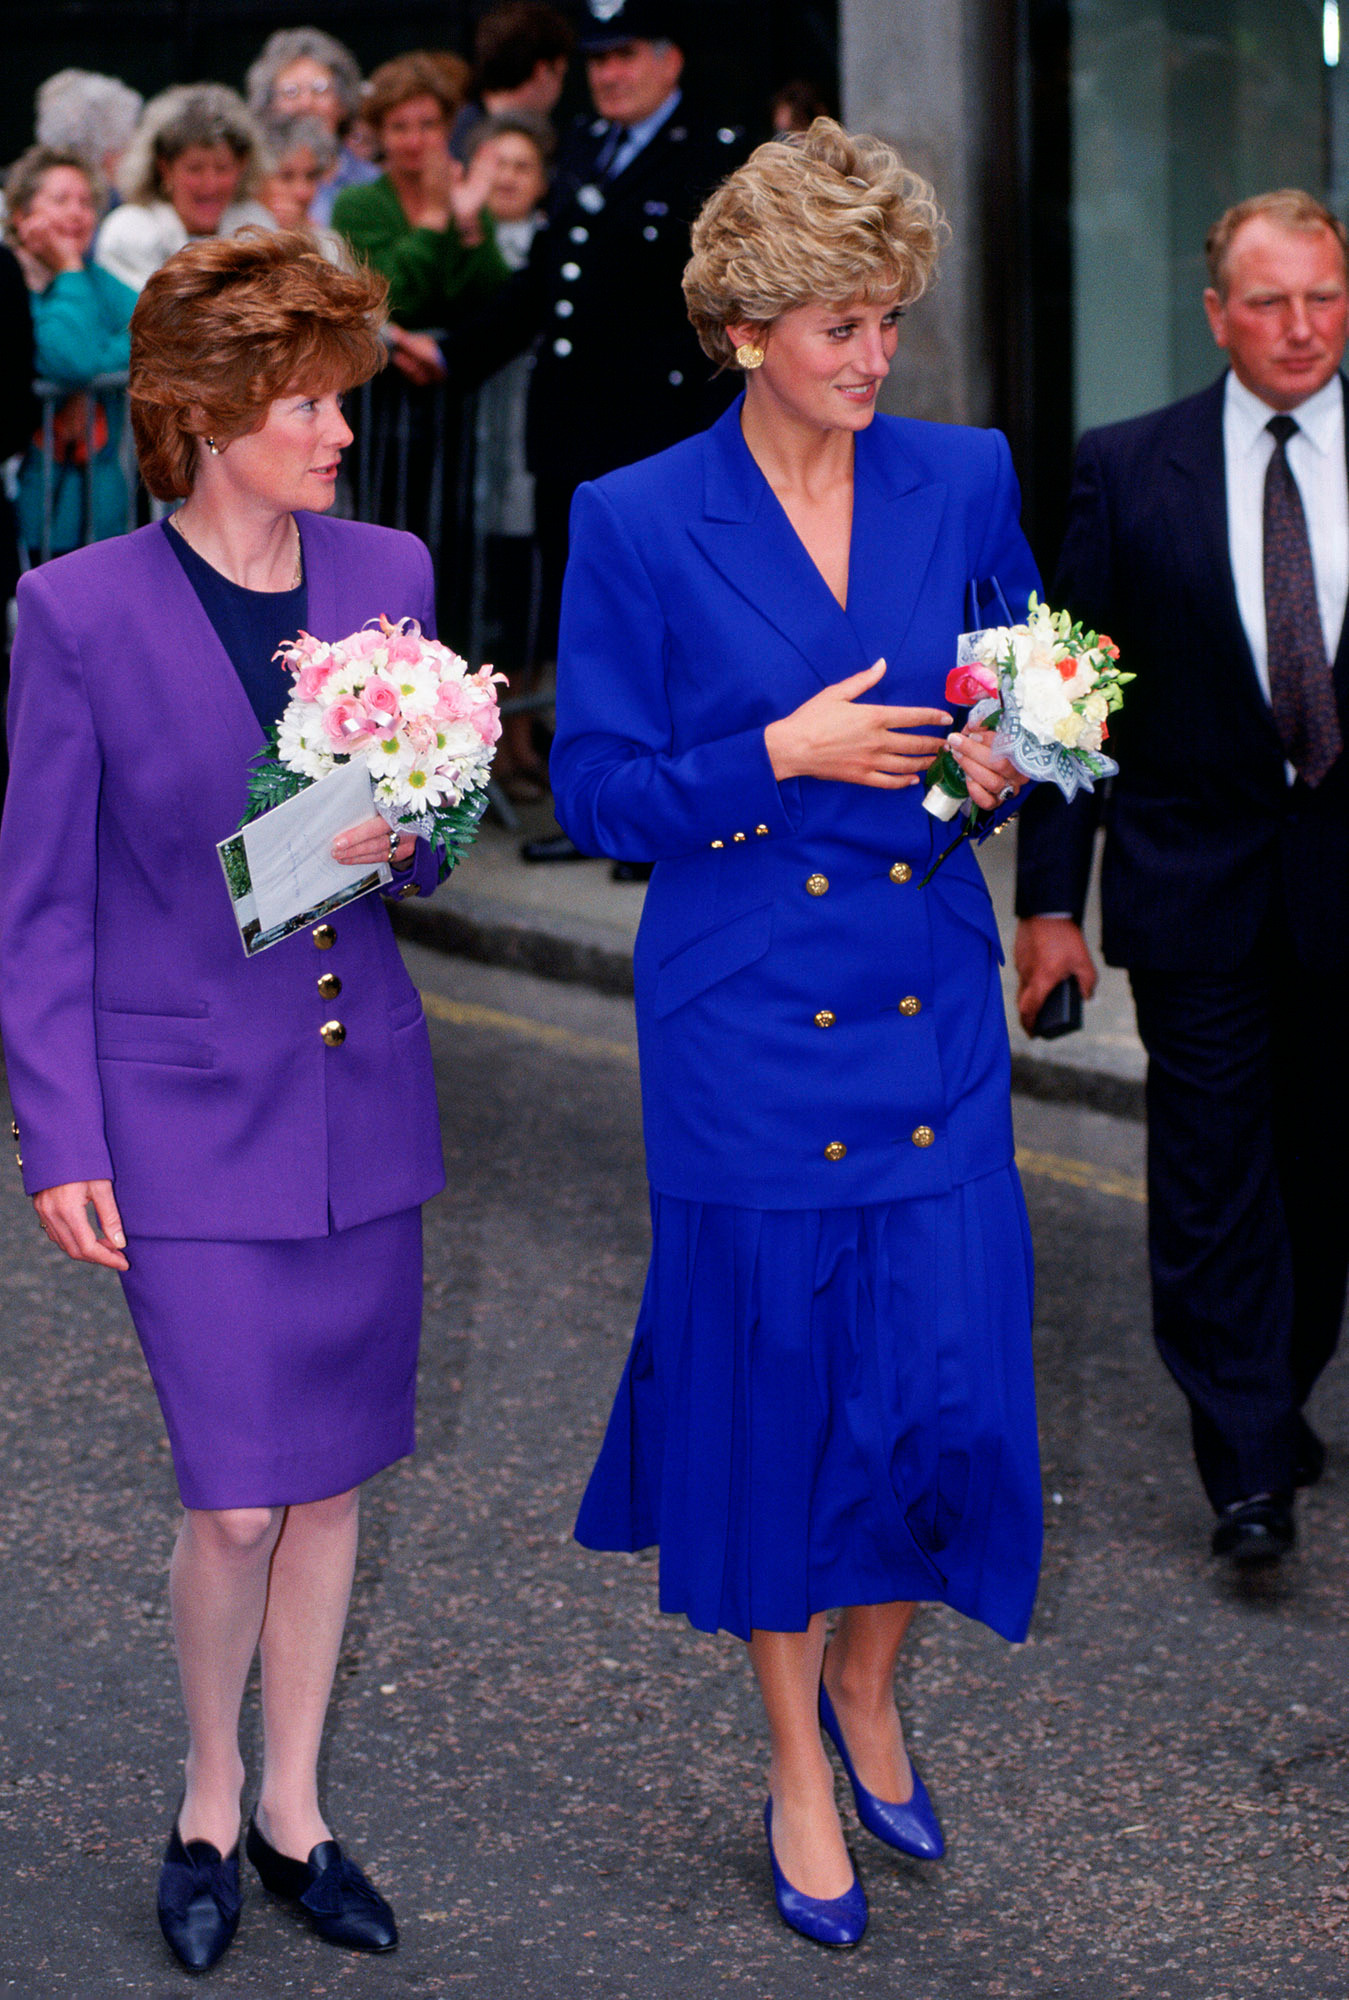 NOTTINGHAM, UNITED KINGDOM - SEPTEMBER 09:  Diana, Princess of Wales with her sister and Lady-in-Waiting, Sarah McCorquodale.  (Photo by Tim Graham/Getty Images)